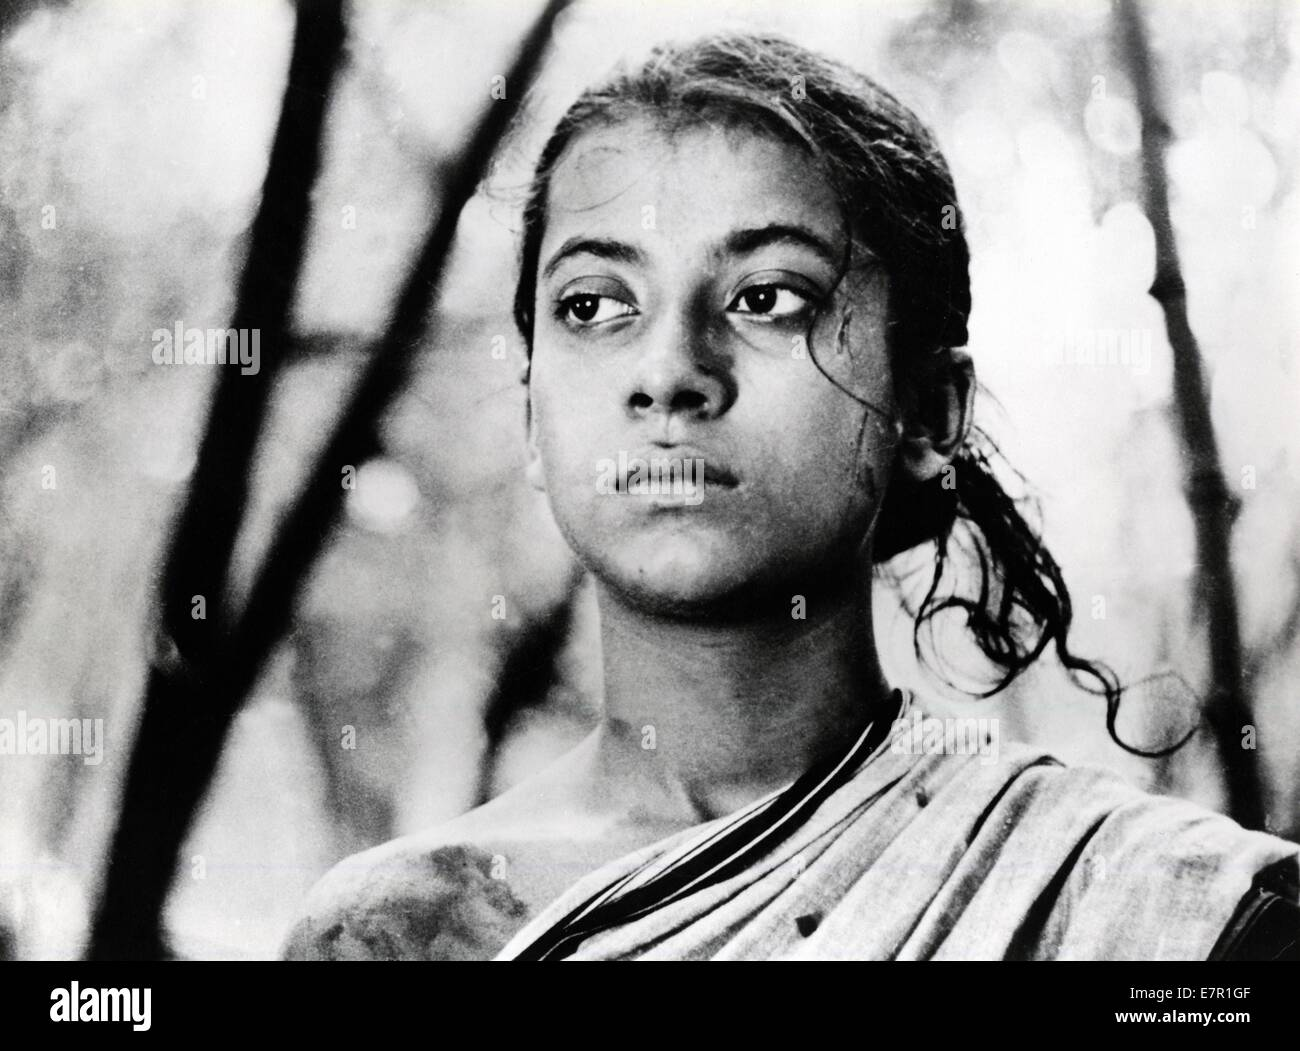 pather panchali song of the road year 1955 india director stock